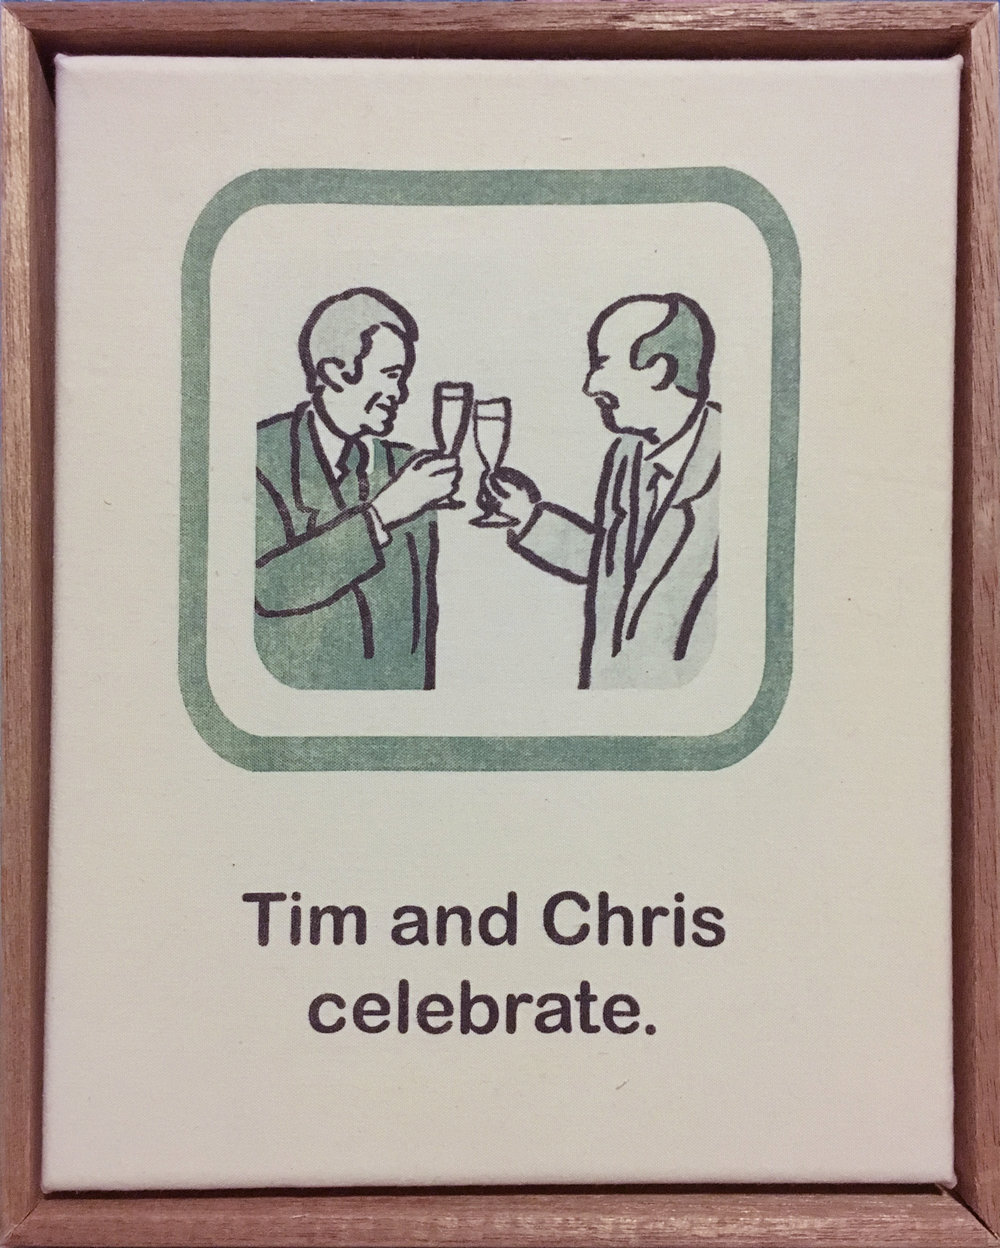 Tim and Chris celebrate.